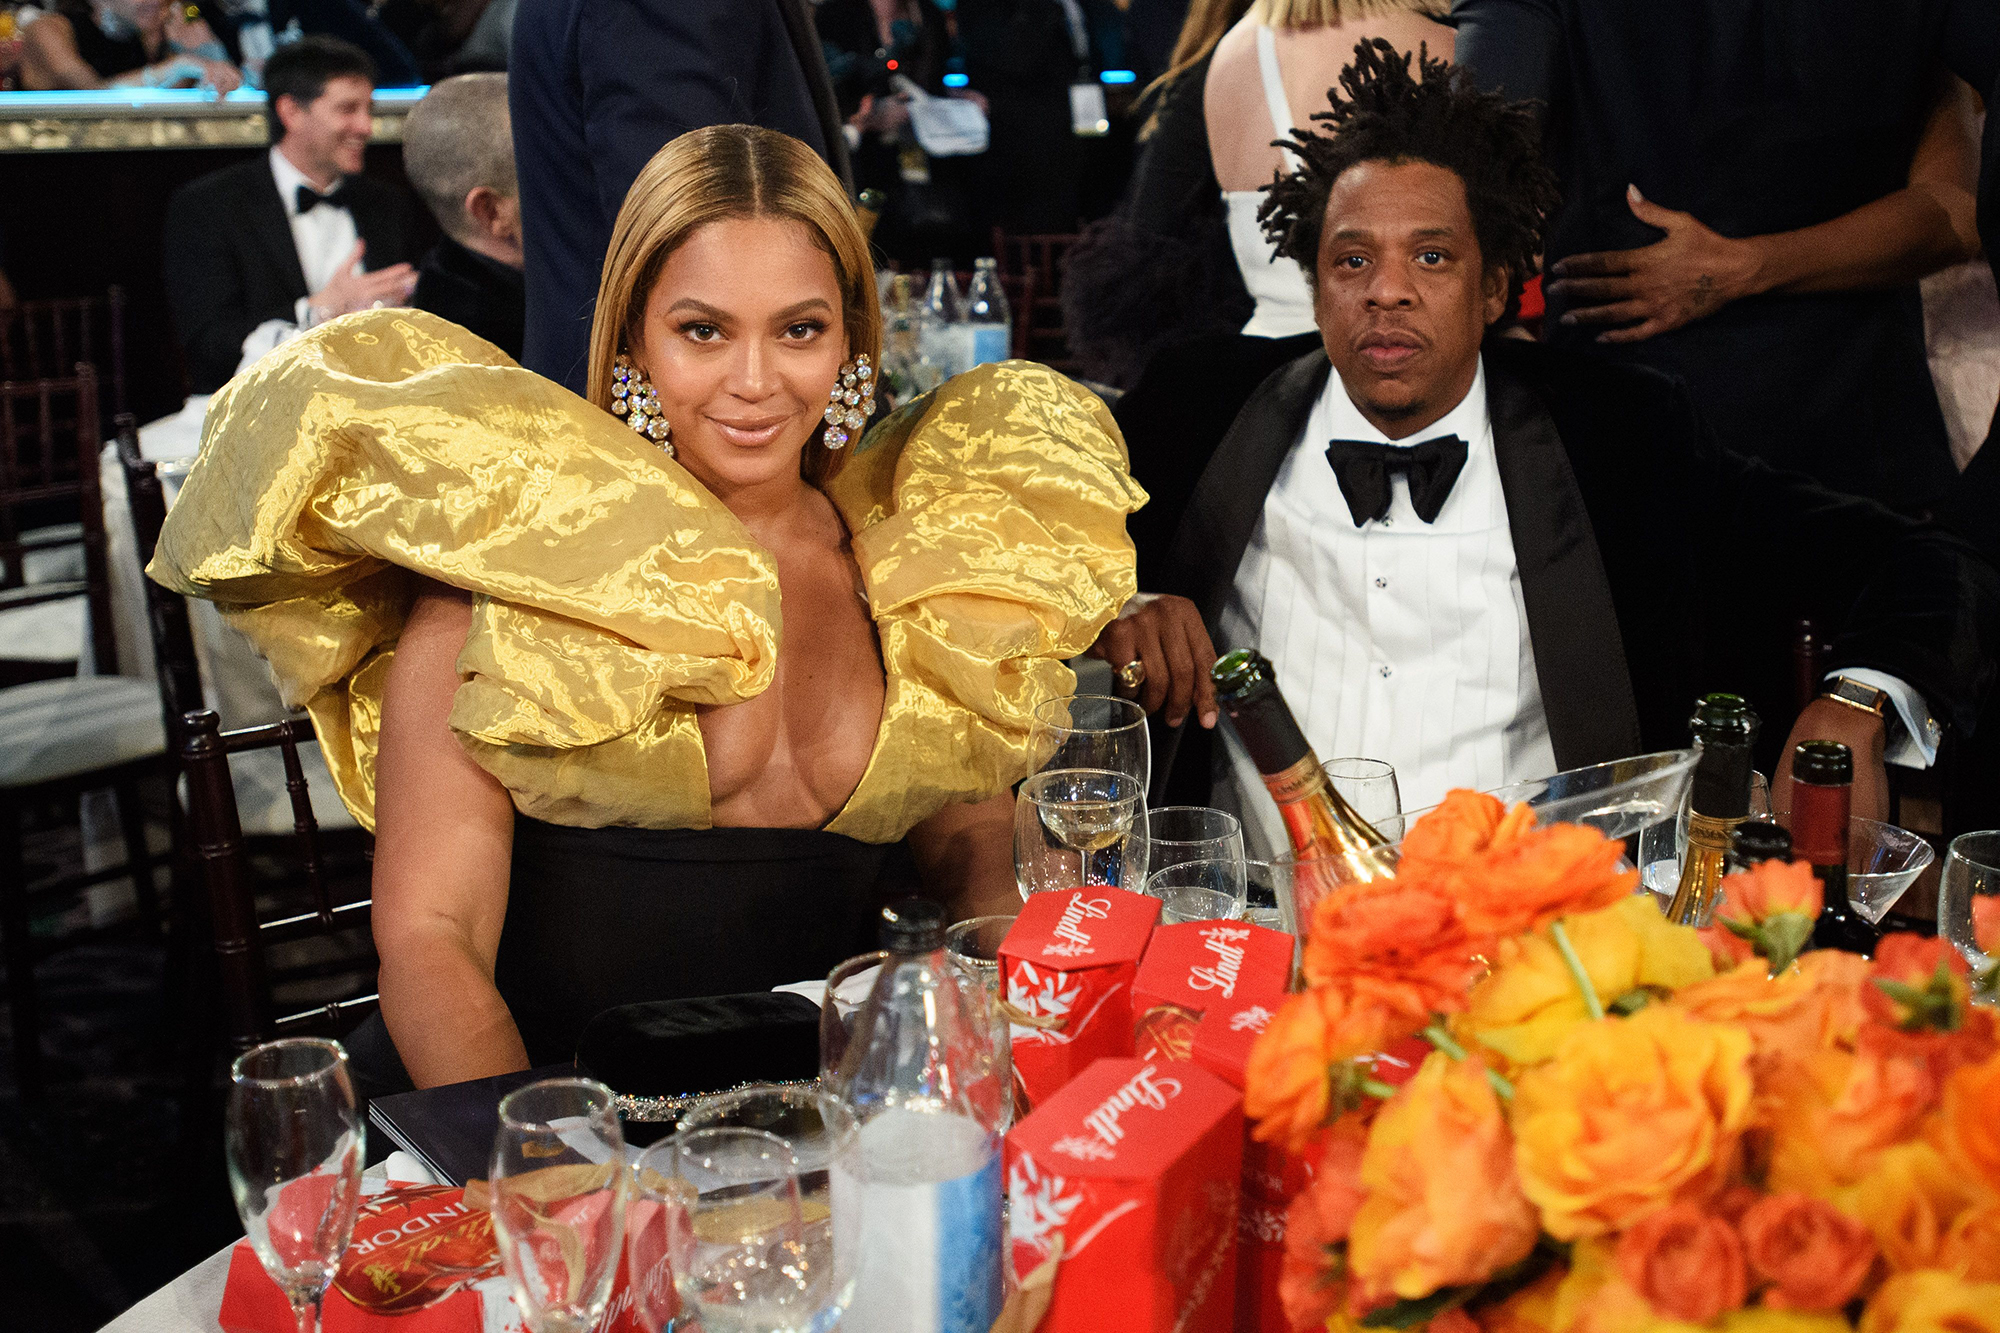 Reese-Witherspoon-Jokes-About-Drinking-Jay-Z-and-Beyonce's-Champagne-2